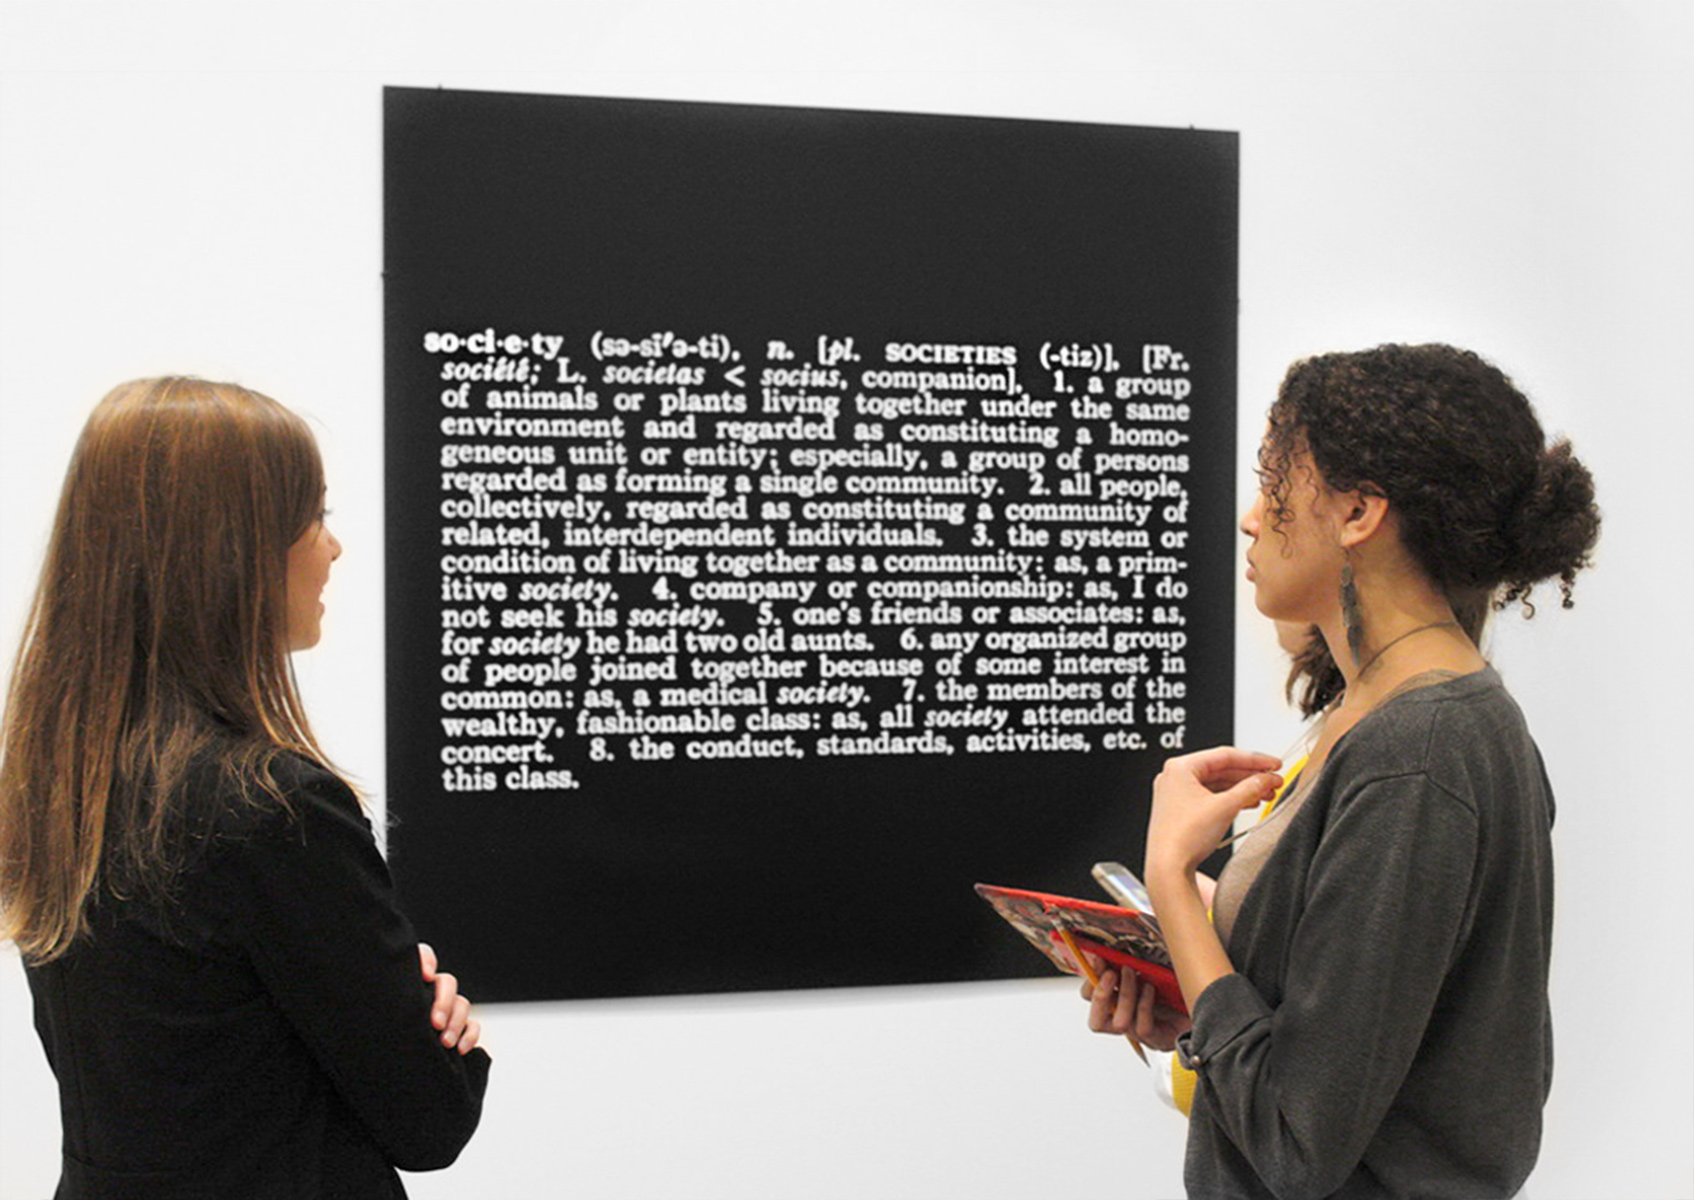 High school students from the Cambridge Rindge and Latin School discuss a print by Joseph Kosuth in the museums' modern and contemporary art galleries. As part of the Graduate Student Teacher program, select students from the Harvard Graduate School of Education spend a year collaborating with teachers to bring high school classes to the Harvard Art Museums.